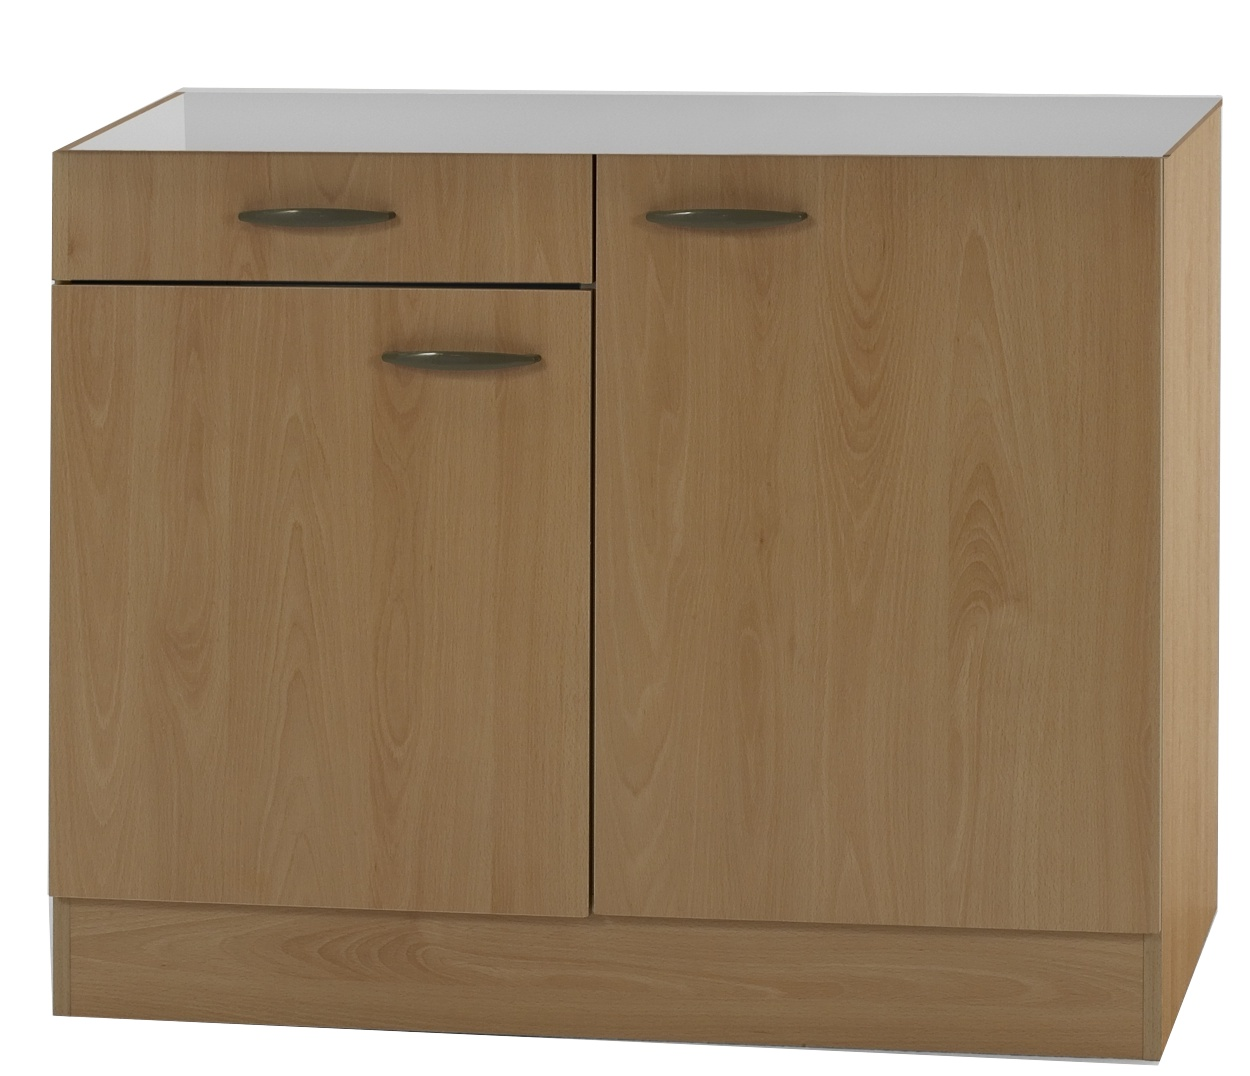 klassik60 sp lenschrank 100cm breit mit schublade buche splso106 ebay. Black Bedroom Furniture Sets. Home Design Ideas